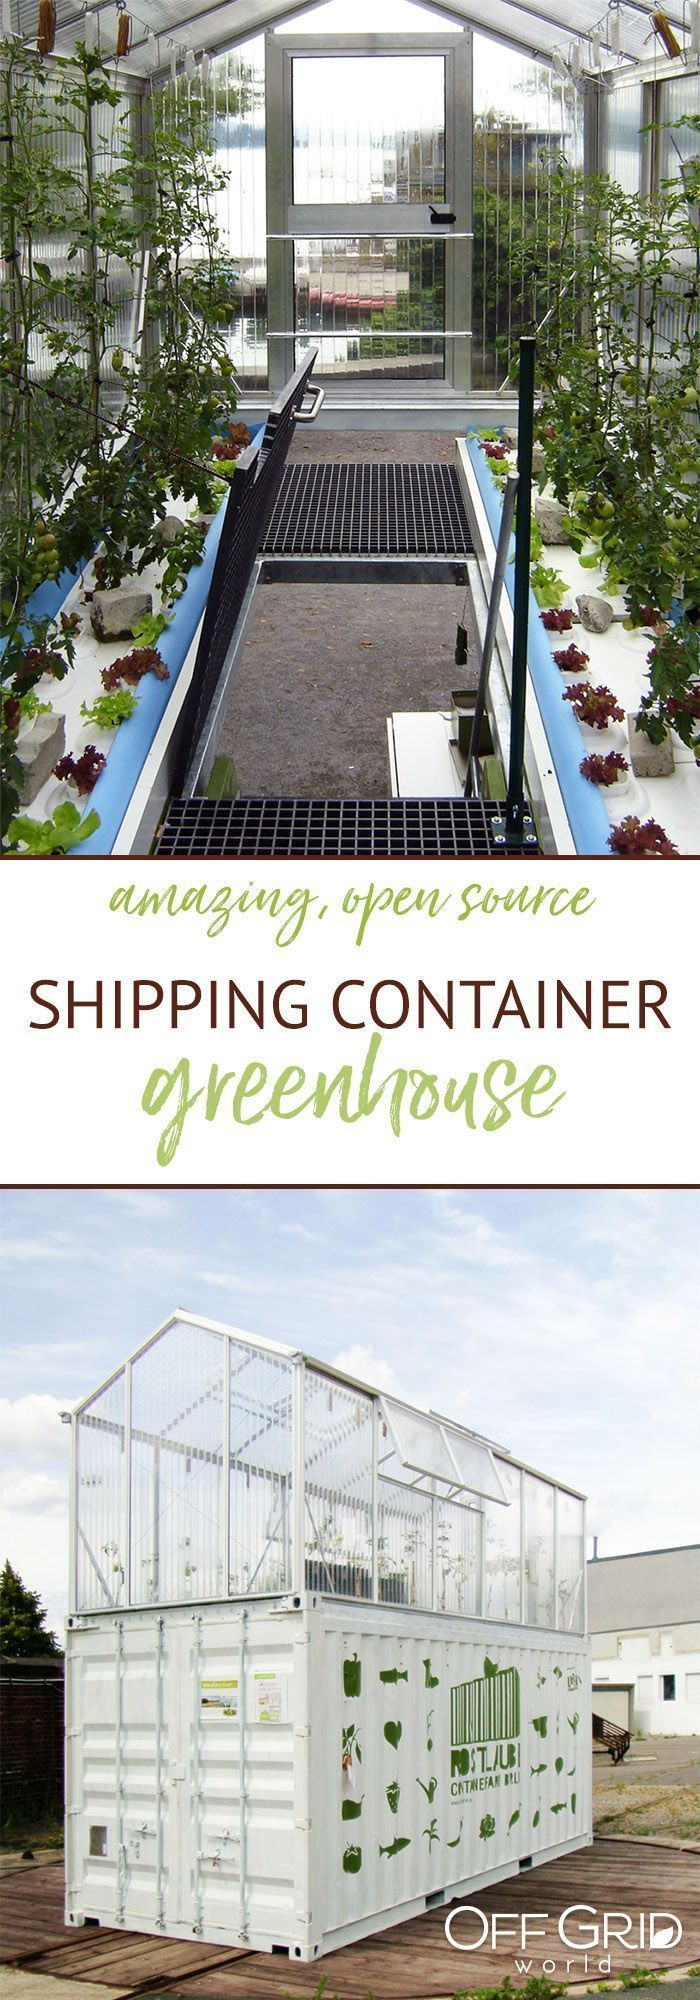 Urban farming solution - a greenhouse built on (and within) a ...